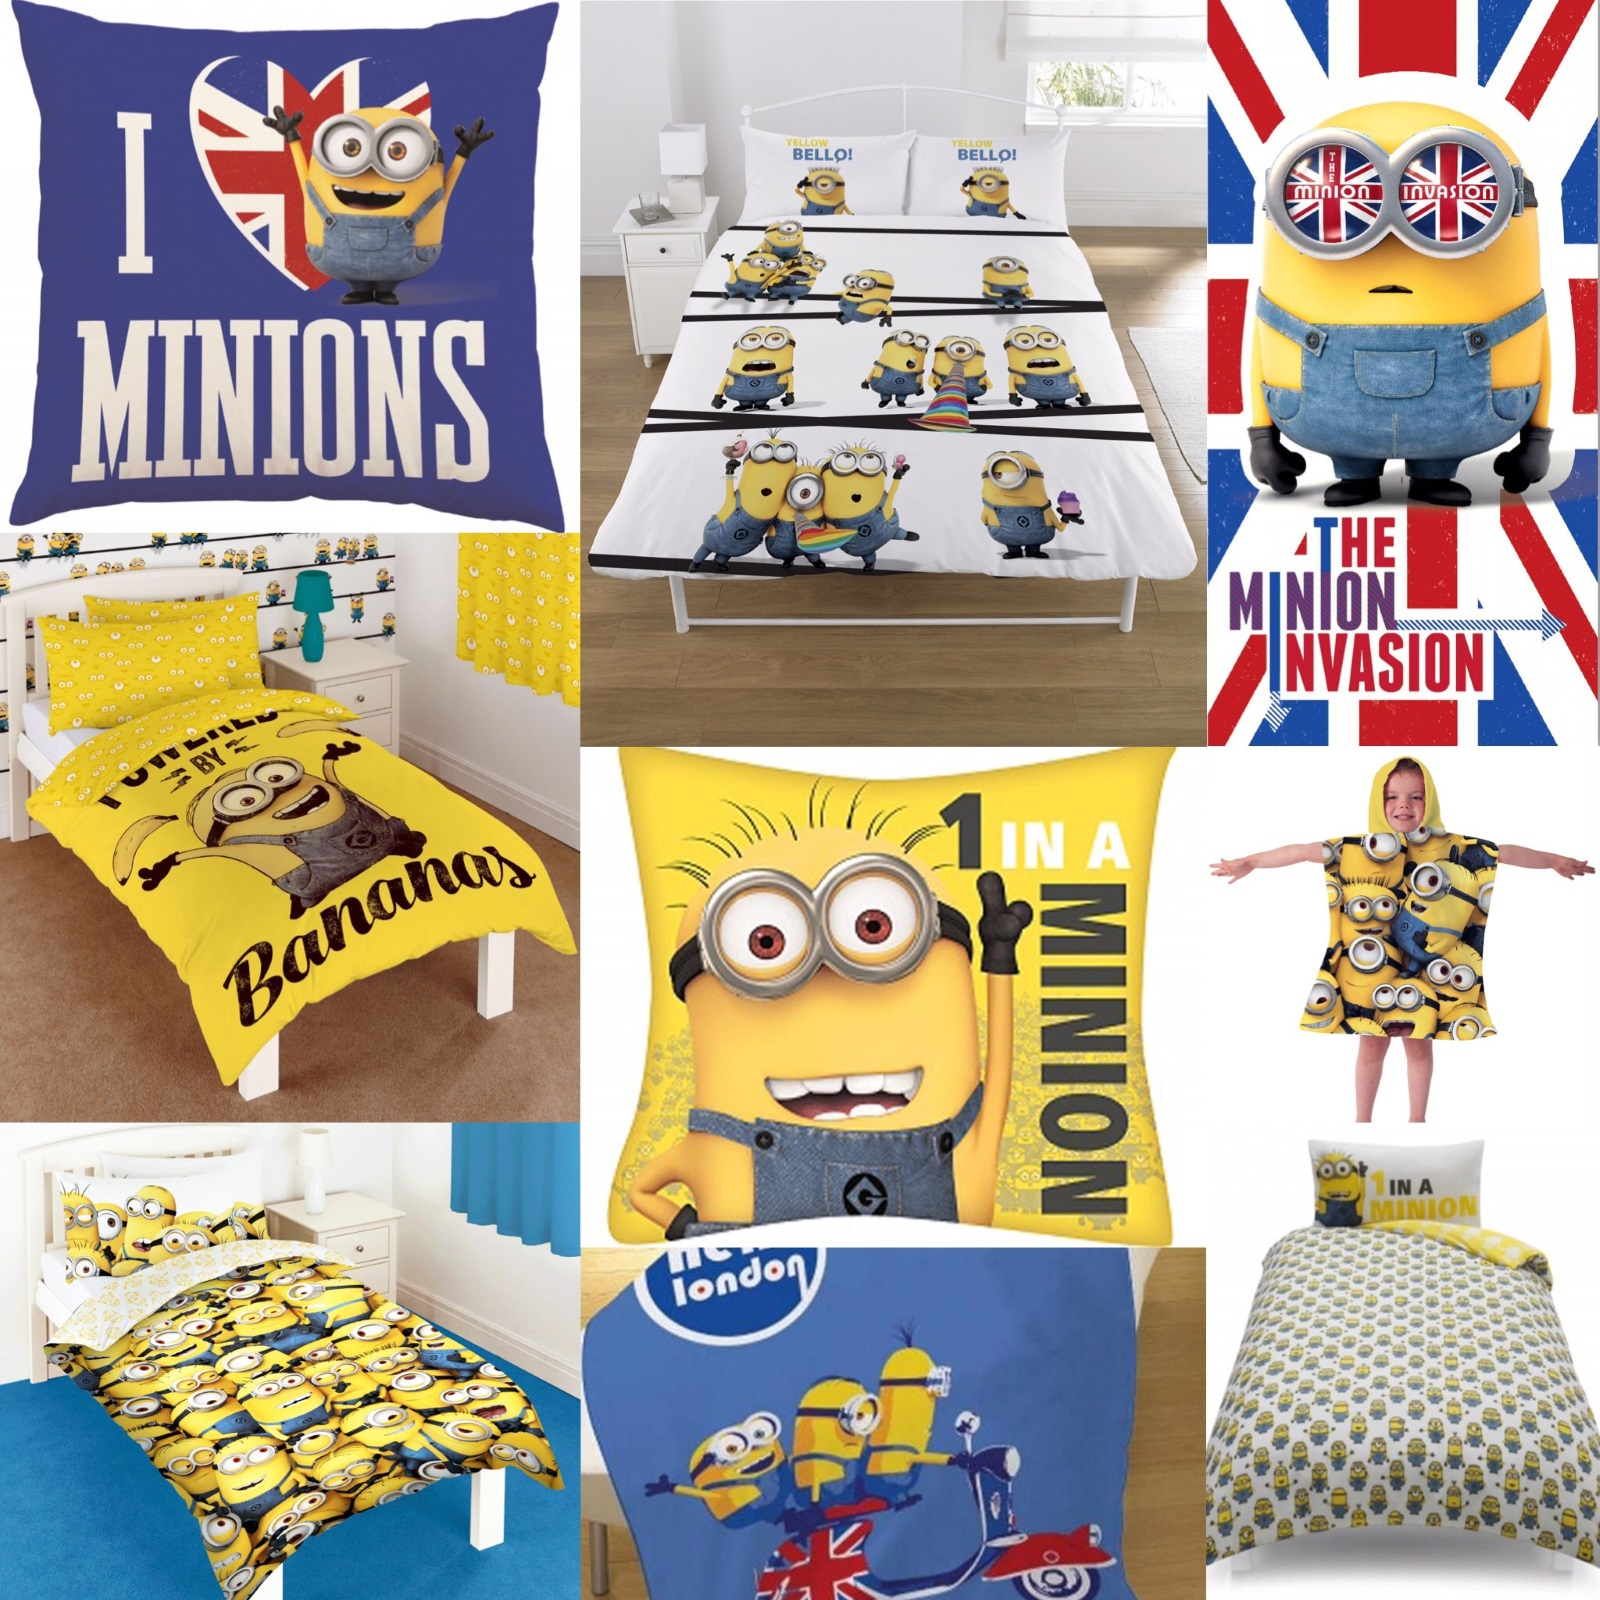 Details about NEW DESPICABLE ME MINIONS BEDROOM ACCESSORIES GIFT PRESENT -  Choose 1 or More